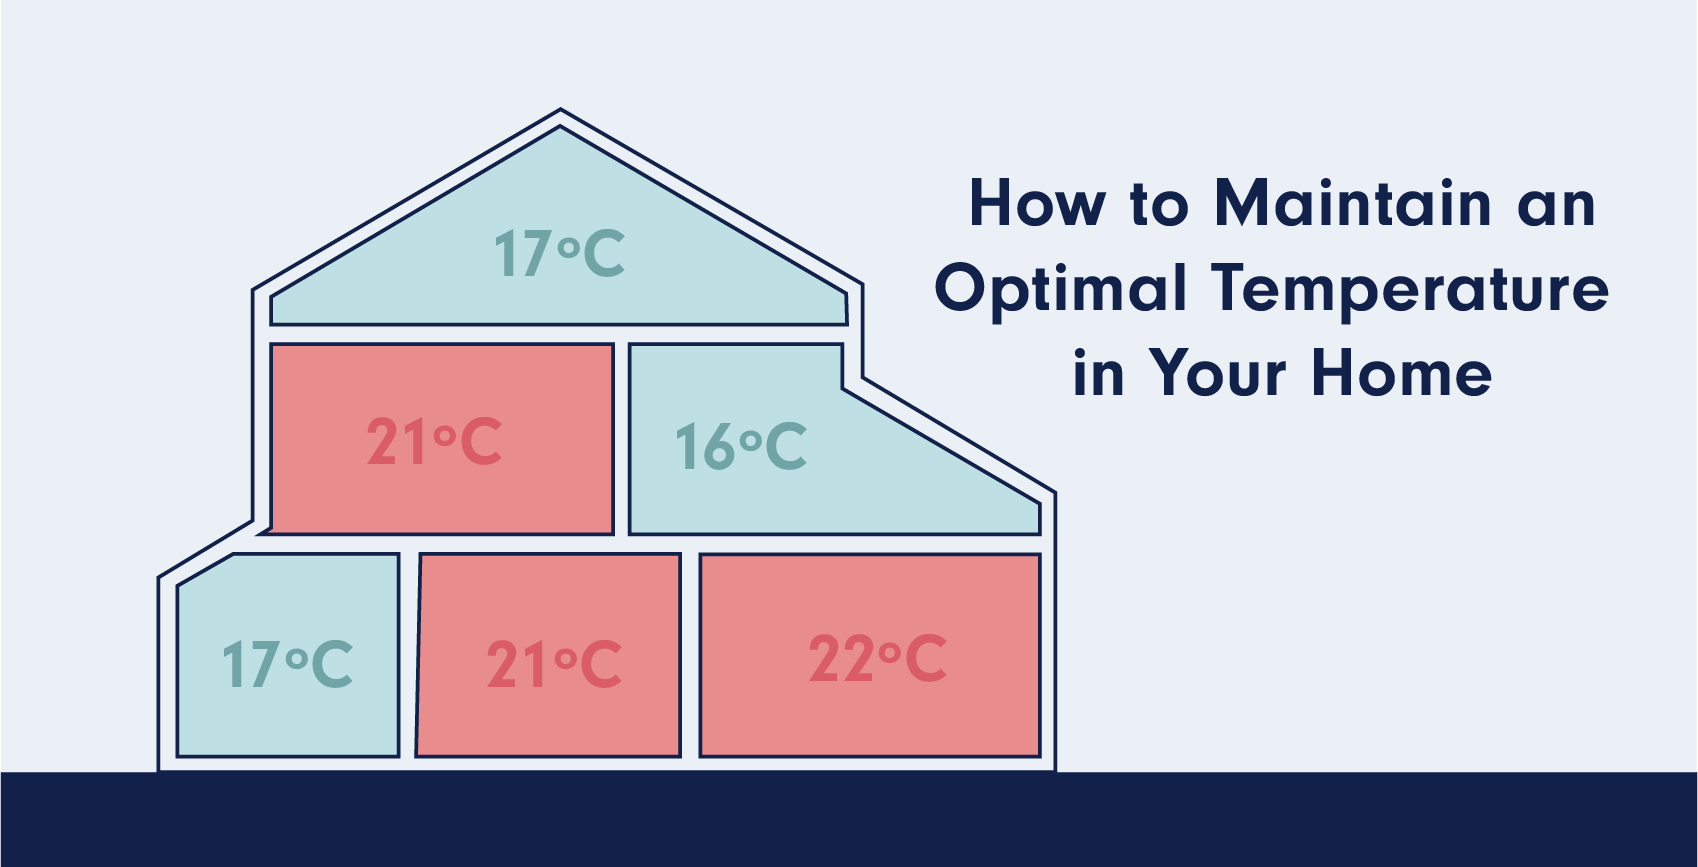 How to Maintain an Optimal Temperature in Your Home